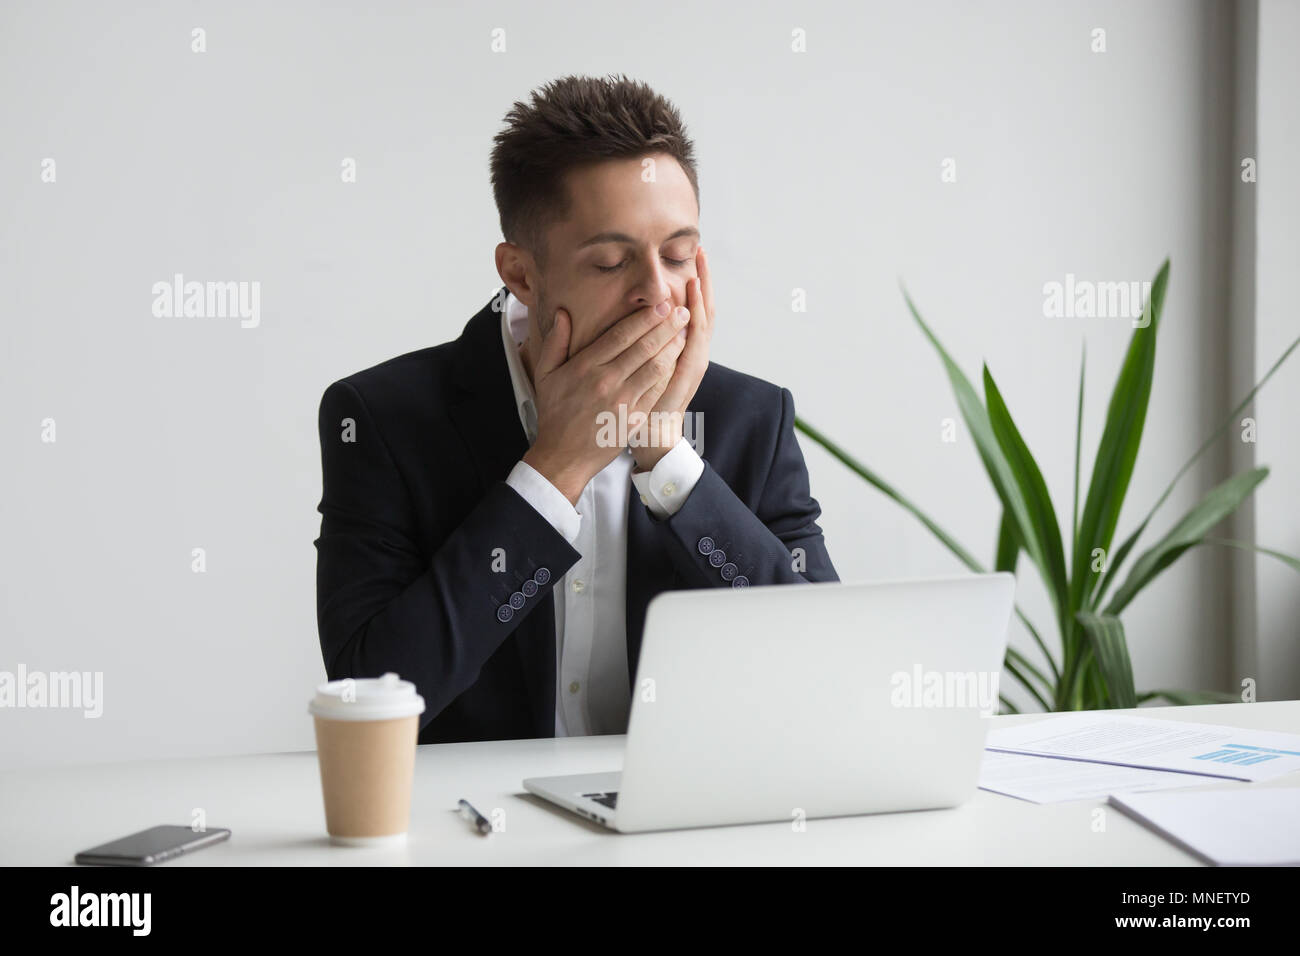 Tired office worker yawning working long hours - Stock Image